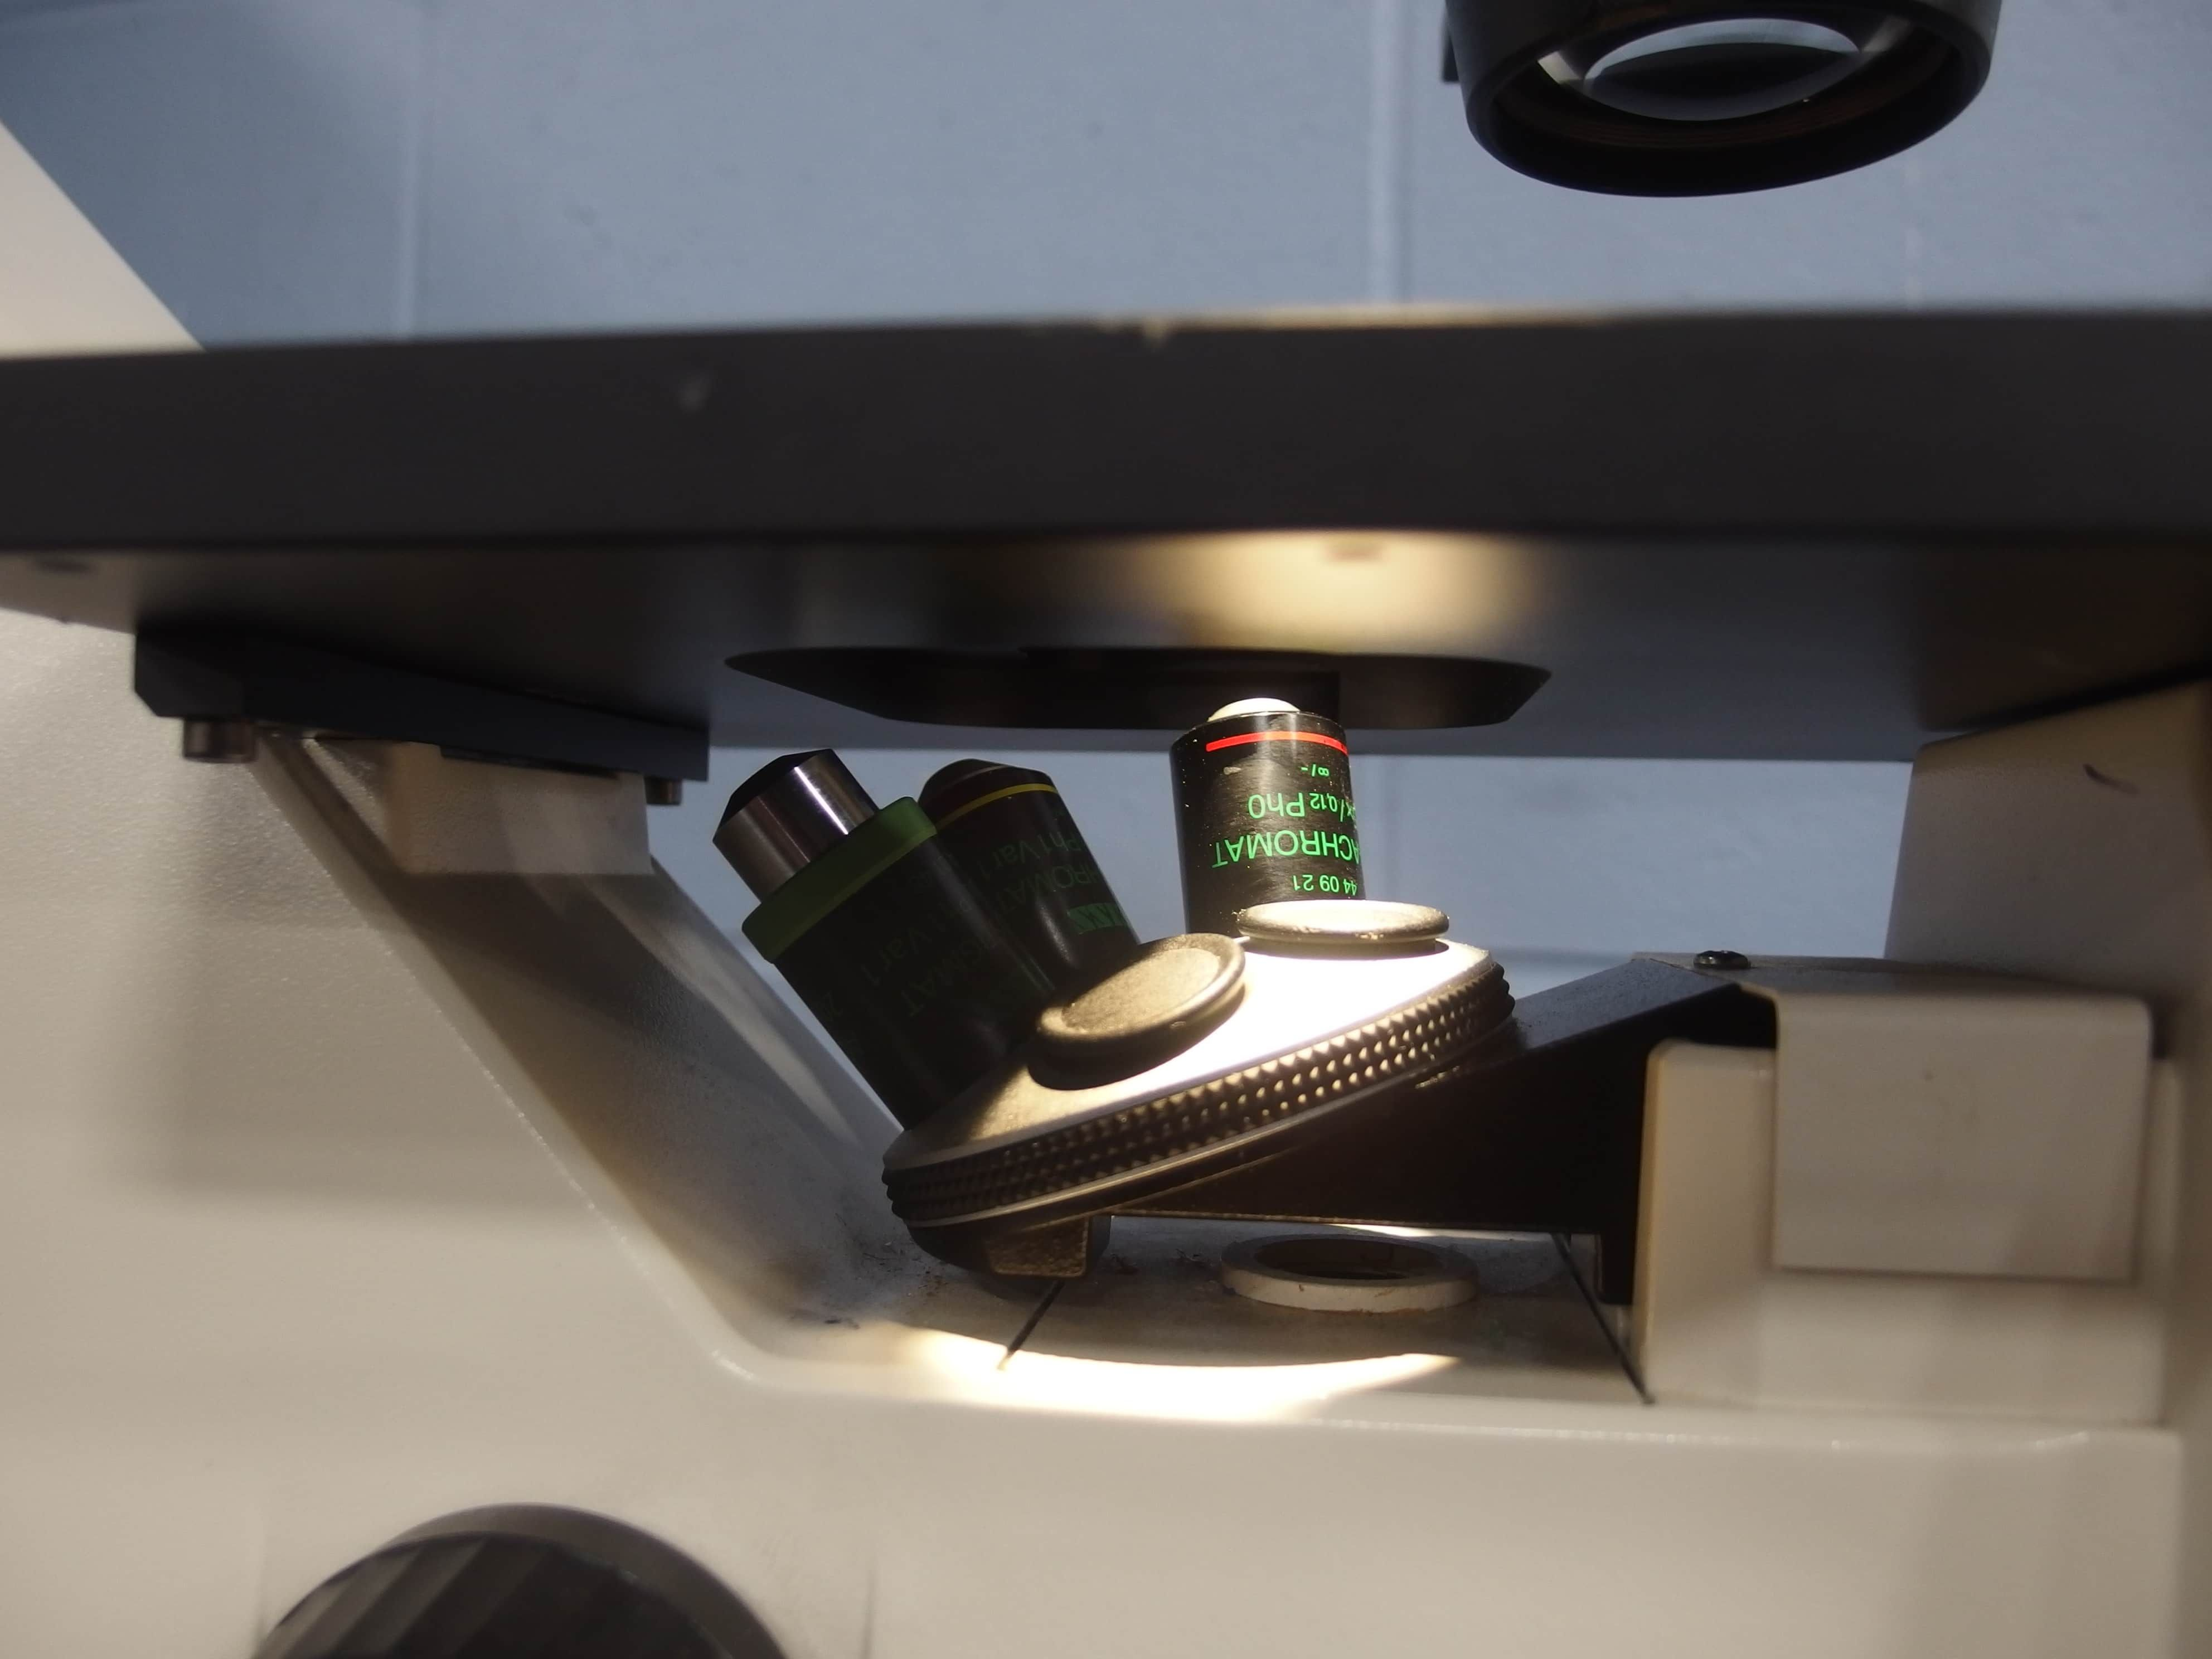 Zeiss Inc. Axiovert 25 Inverted Microscope